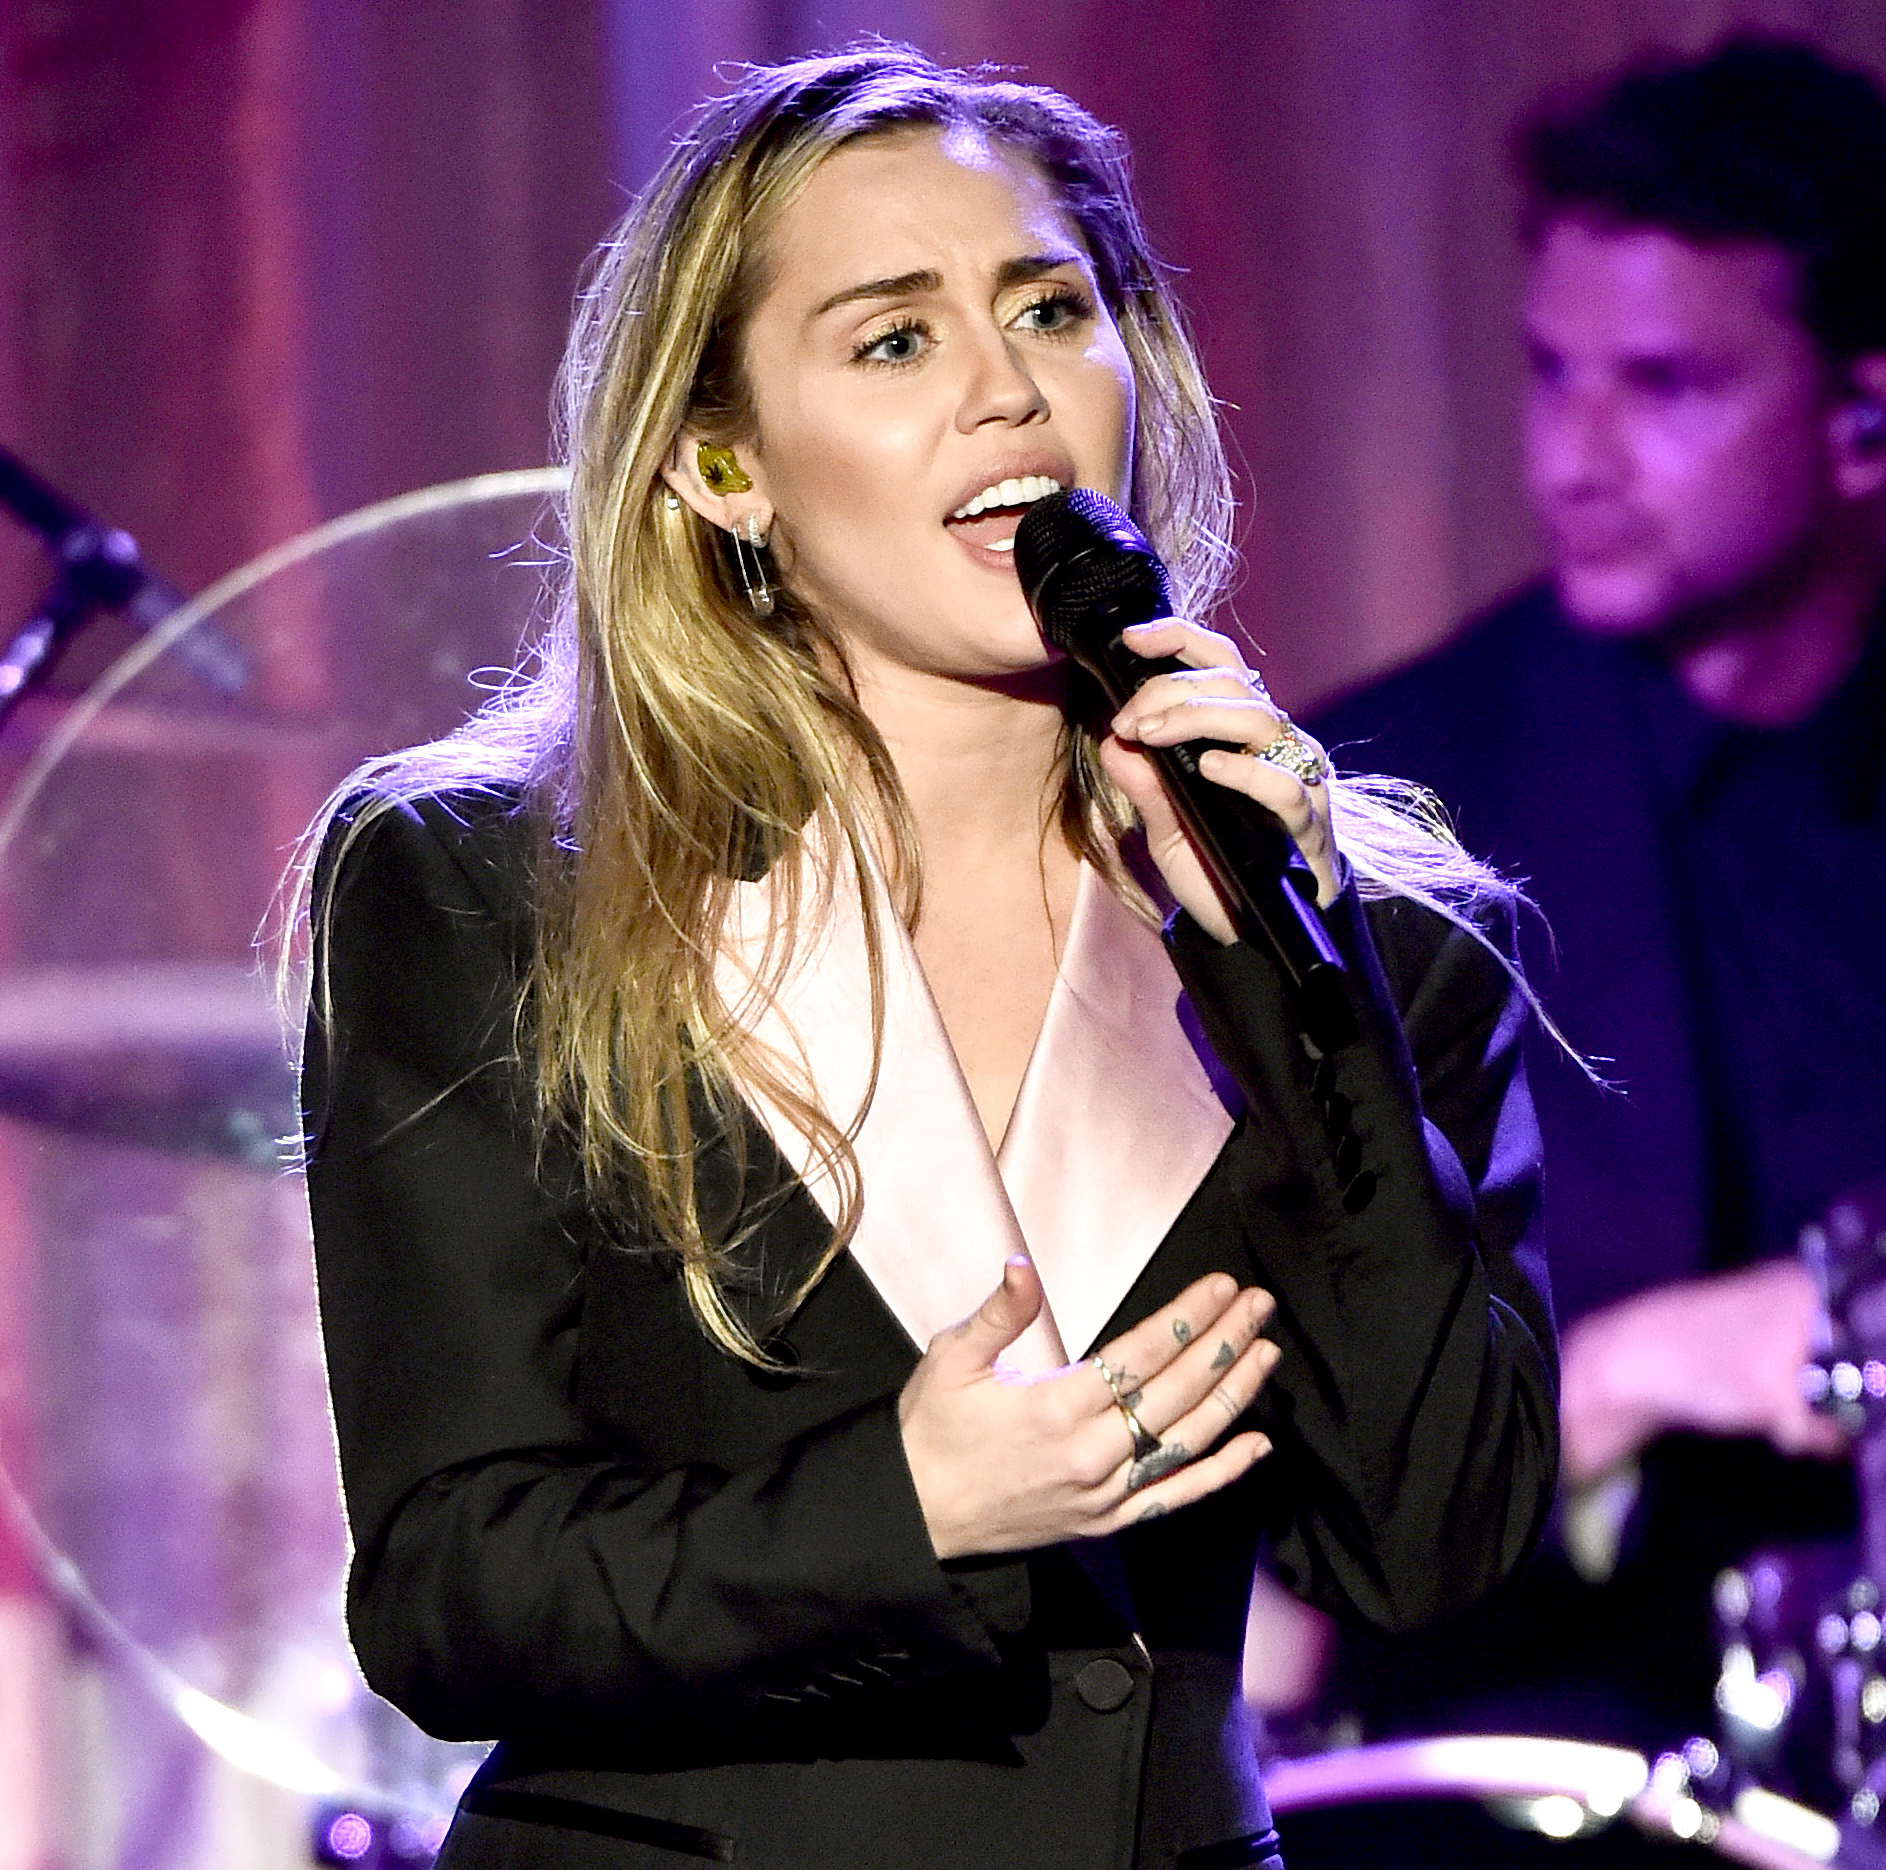 Miley-Cyrus-Shares-Her-Heartbreak-on-New-Song-Slideaway